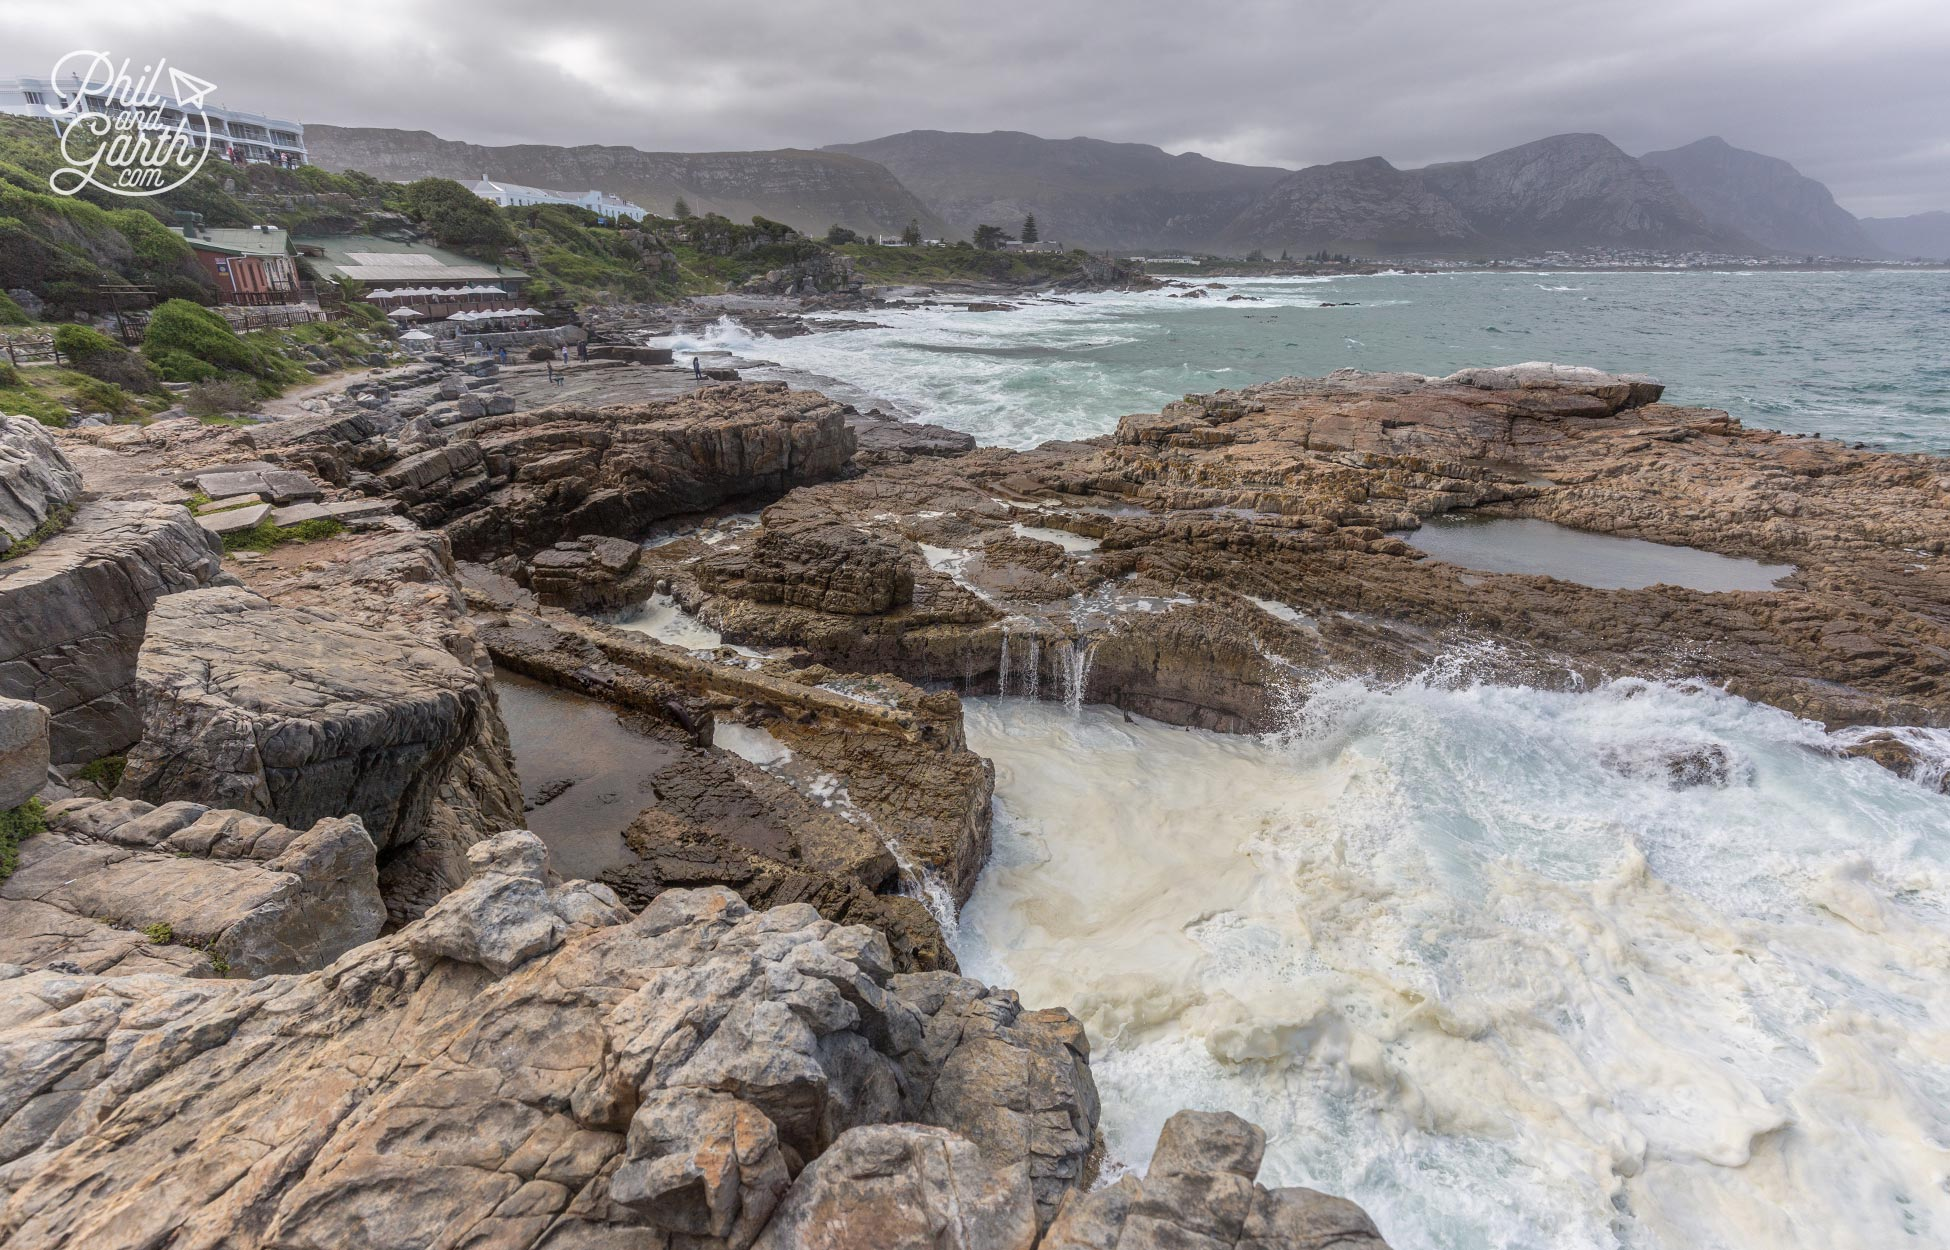 Hermanus Whale Watching - We loved watching the power of the waves next to the old harbour